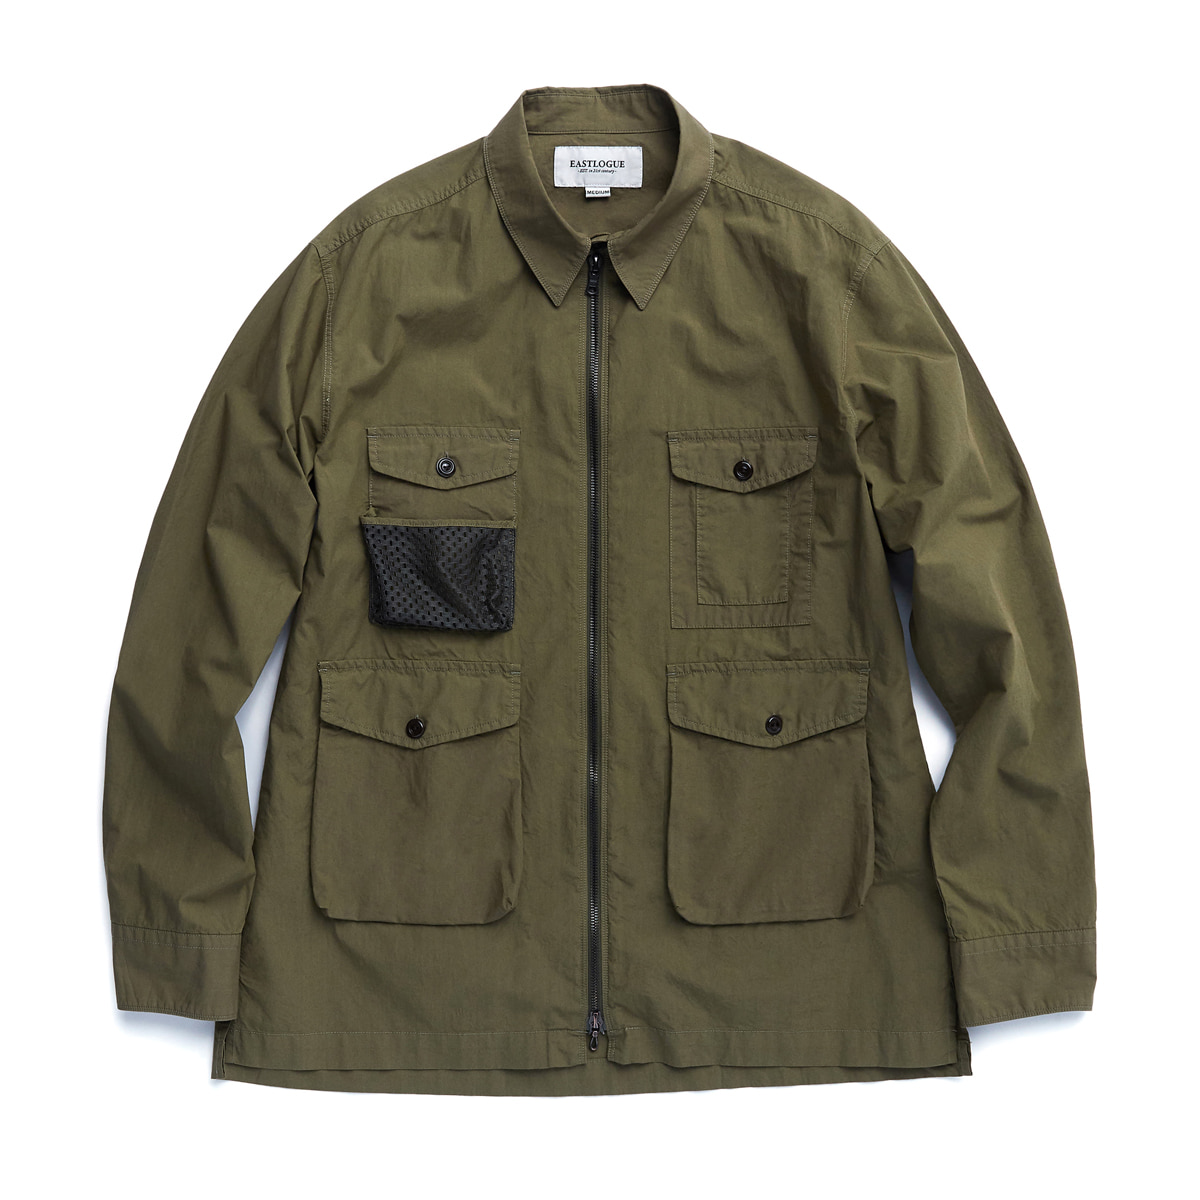 [EASTLOGUE] 4 POCKETS UTILITY SHIRT 'DYED OLIVE'